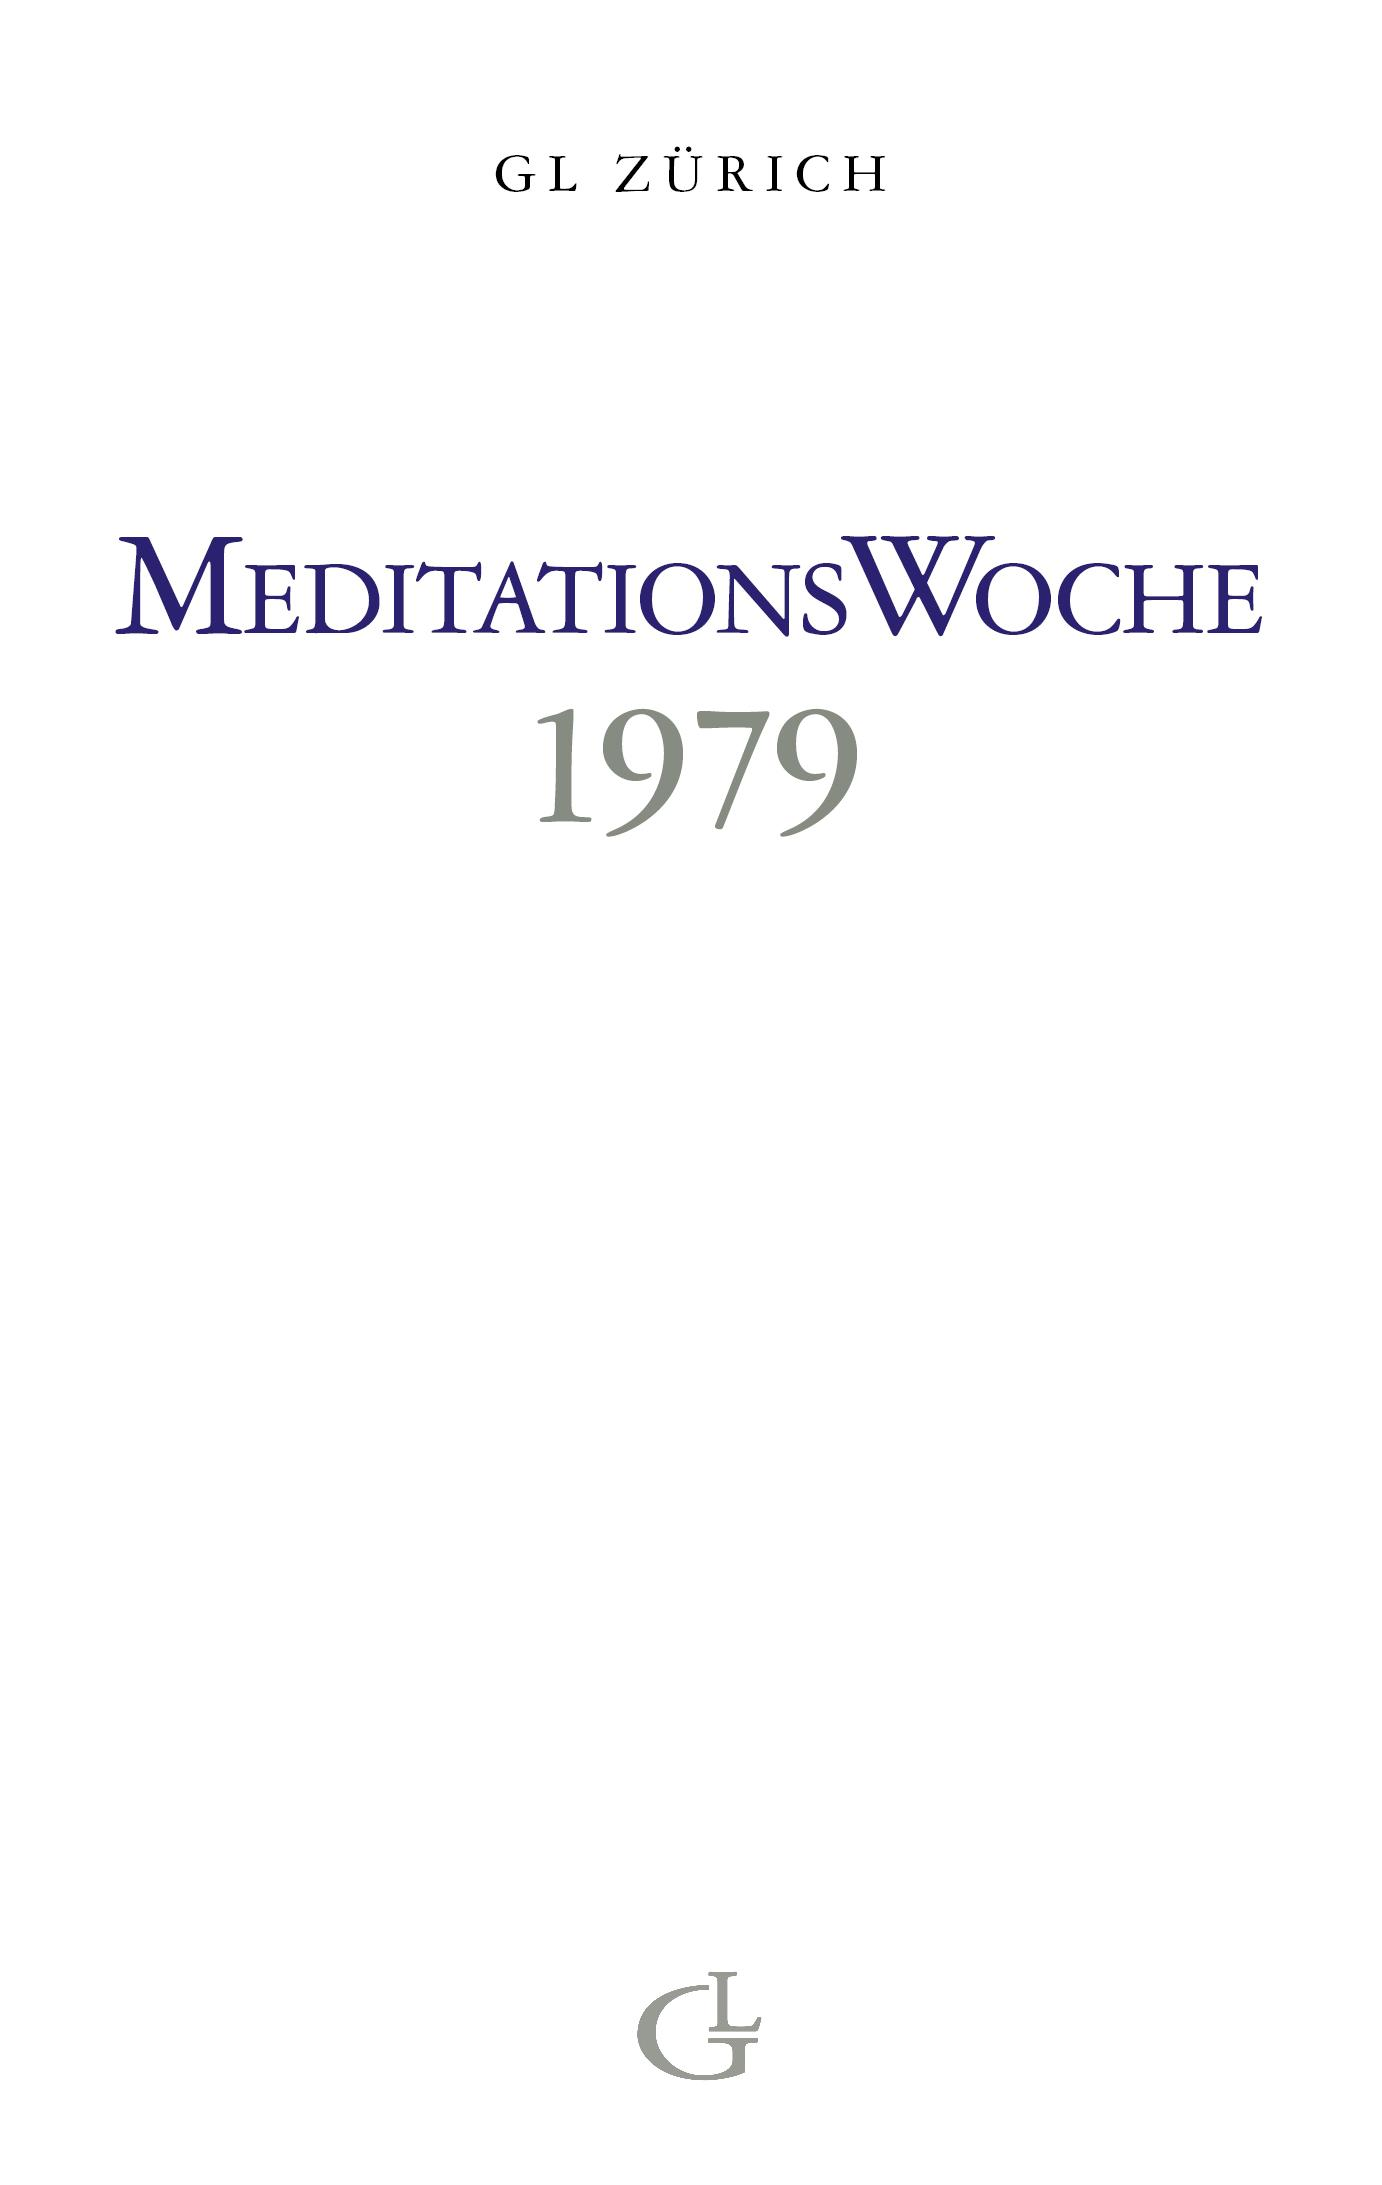 Cover des Buches Meditationswoche 1979 von Medium Beatrice Brunner